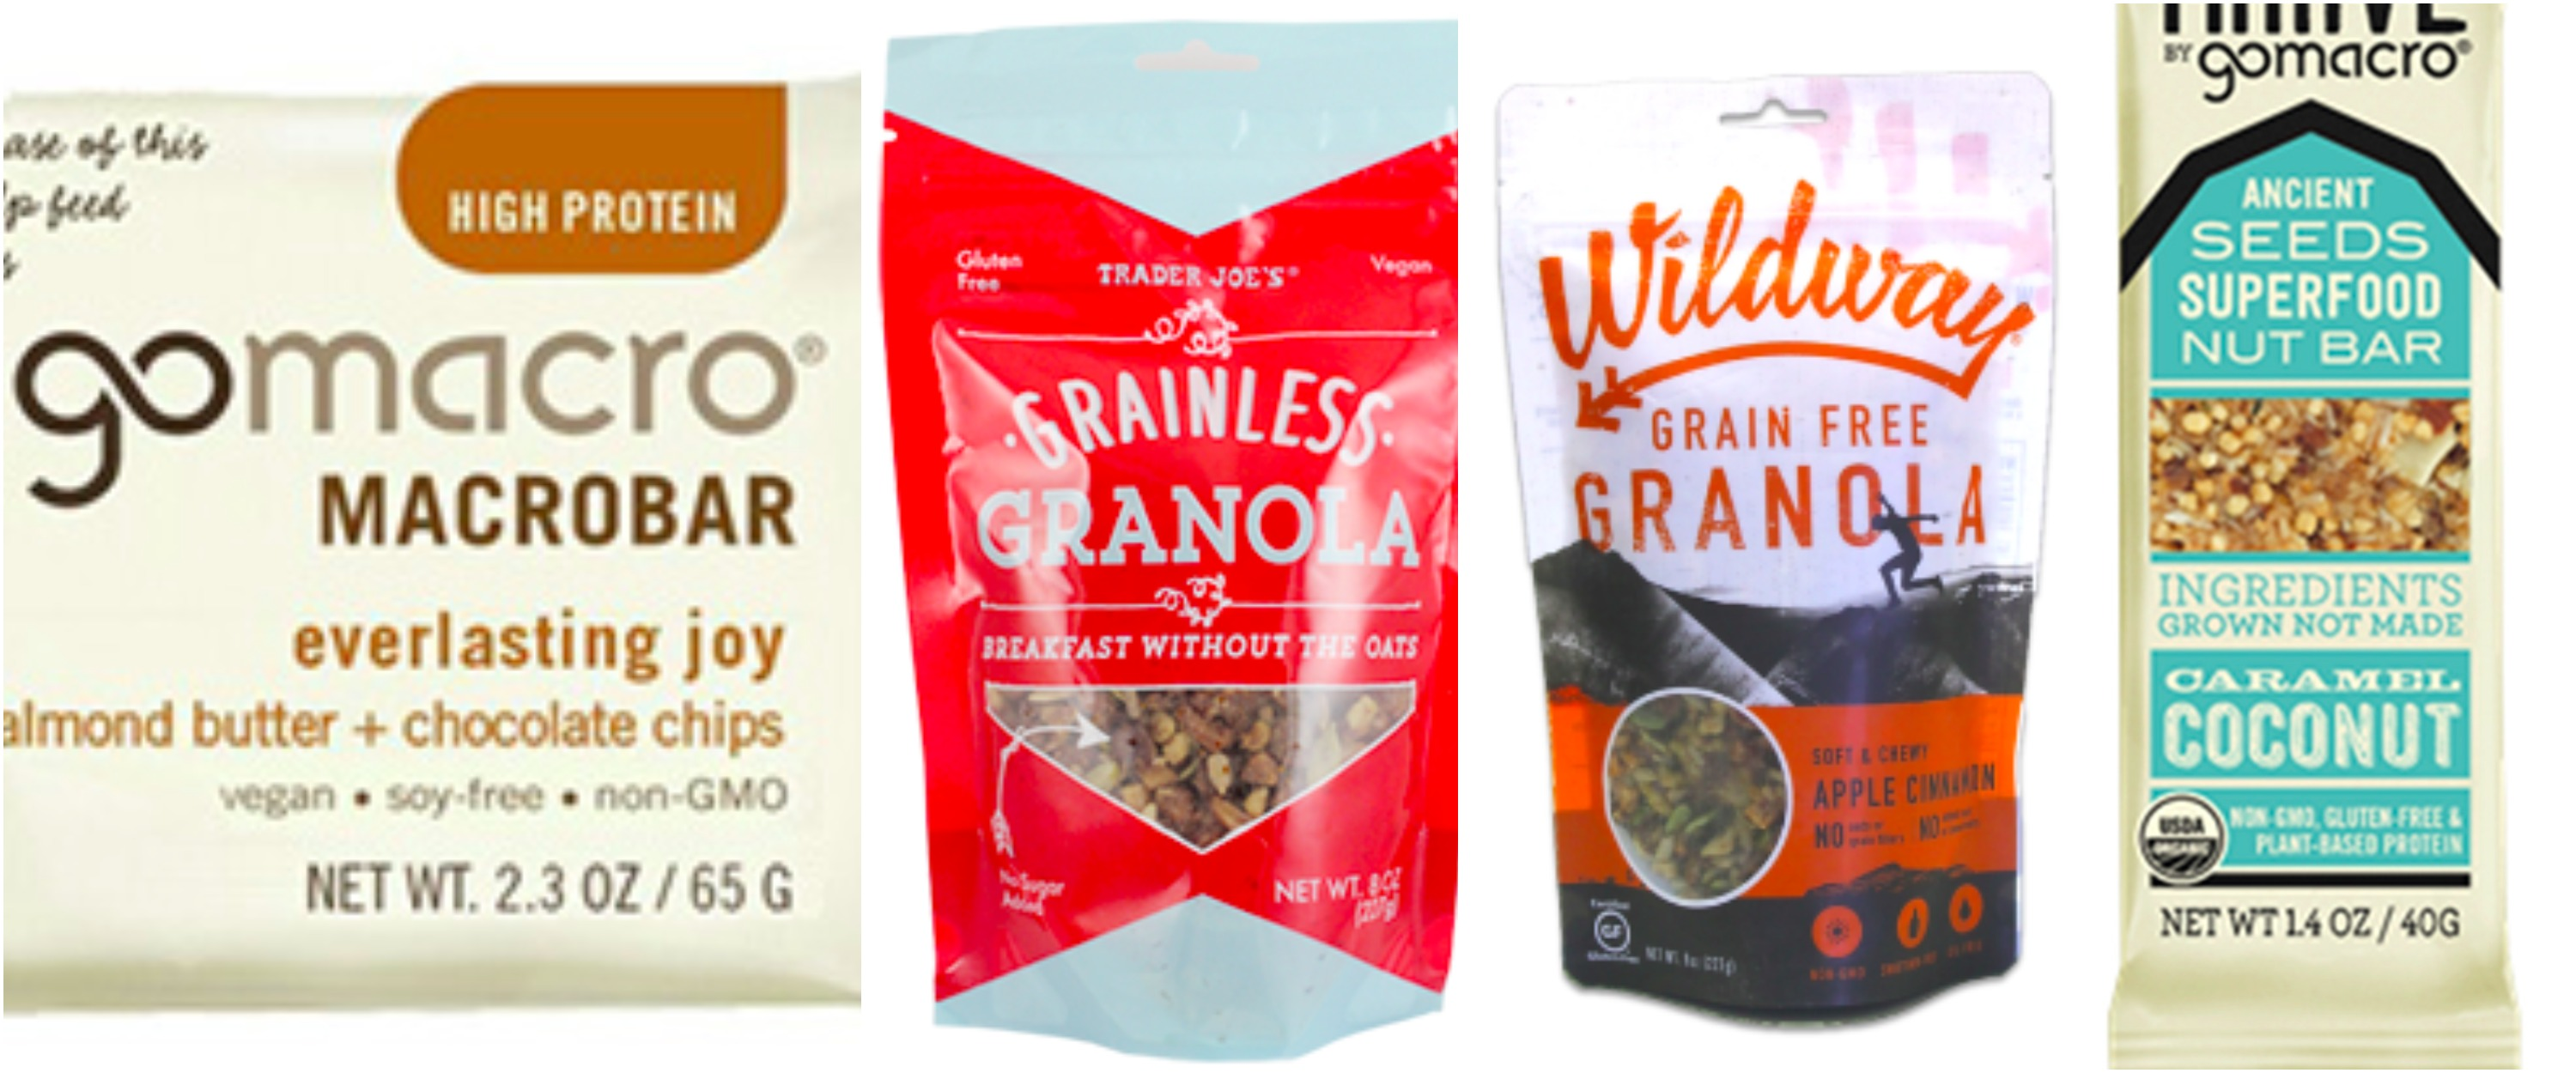 Trader Joe's Grainless Granola, GoMacro & BulletProof Bars Recalled Over Listeria Concerns